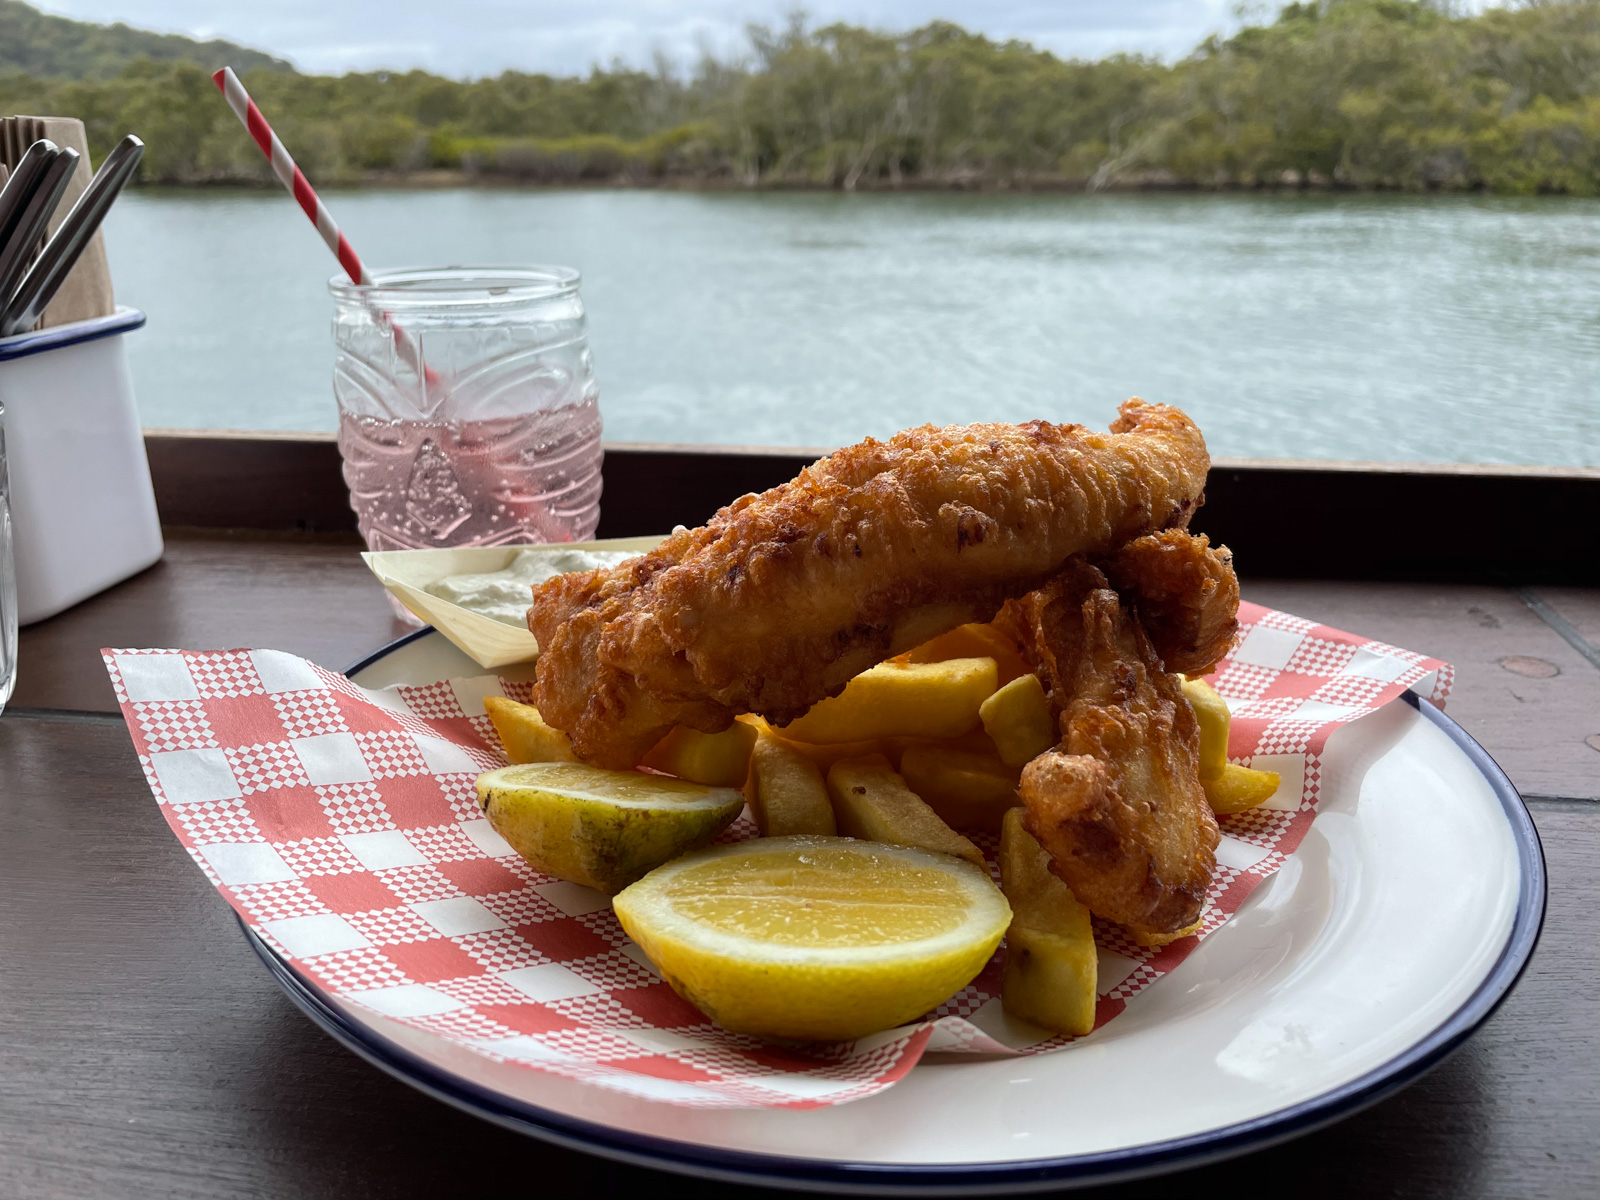 A plate of battered fish and chips on a wooden surface. Behind it is a glass with a translucent pink liquid in it. The view in the background is of a lake